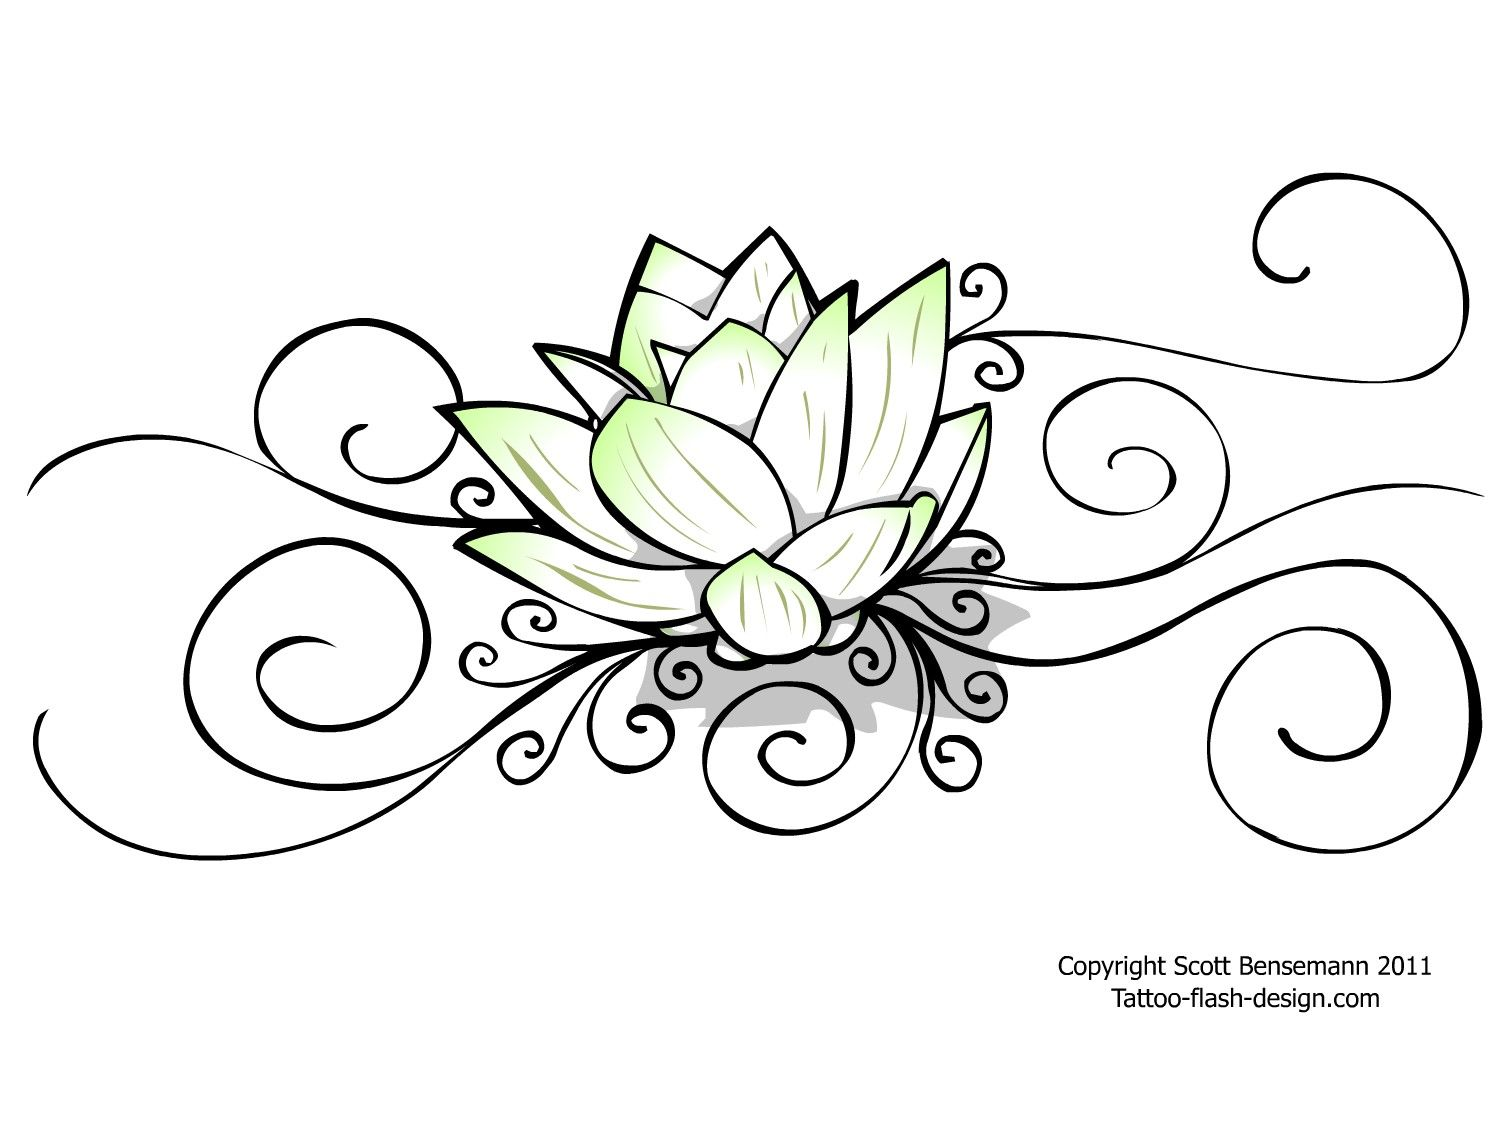 Lotus flower tattoo flower lotus design tattoo lotus flower flash lotus flower tattoo flower lotus design tattoo lotus flower flash outline thanks izmirmasajfo